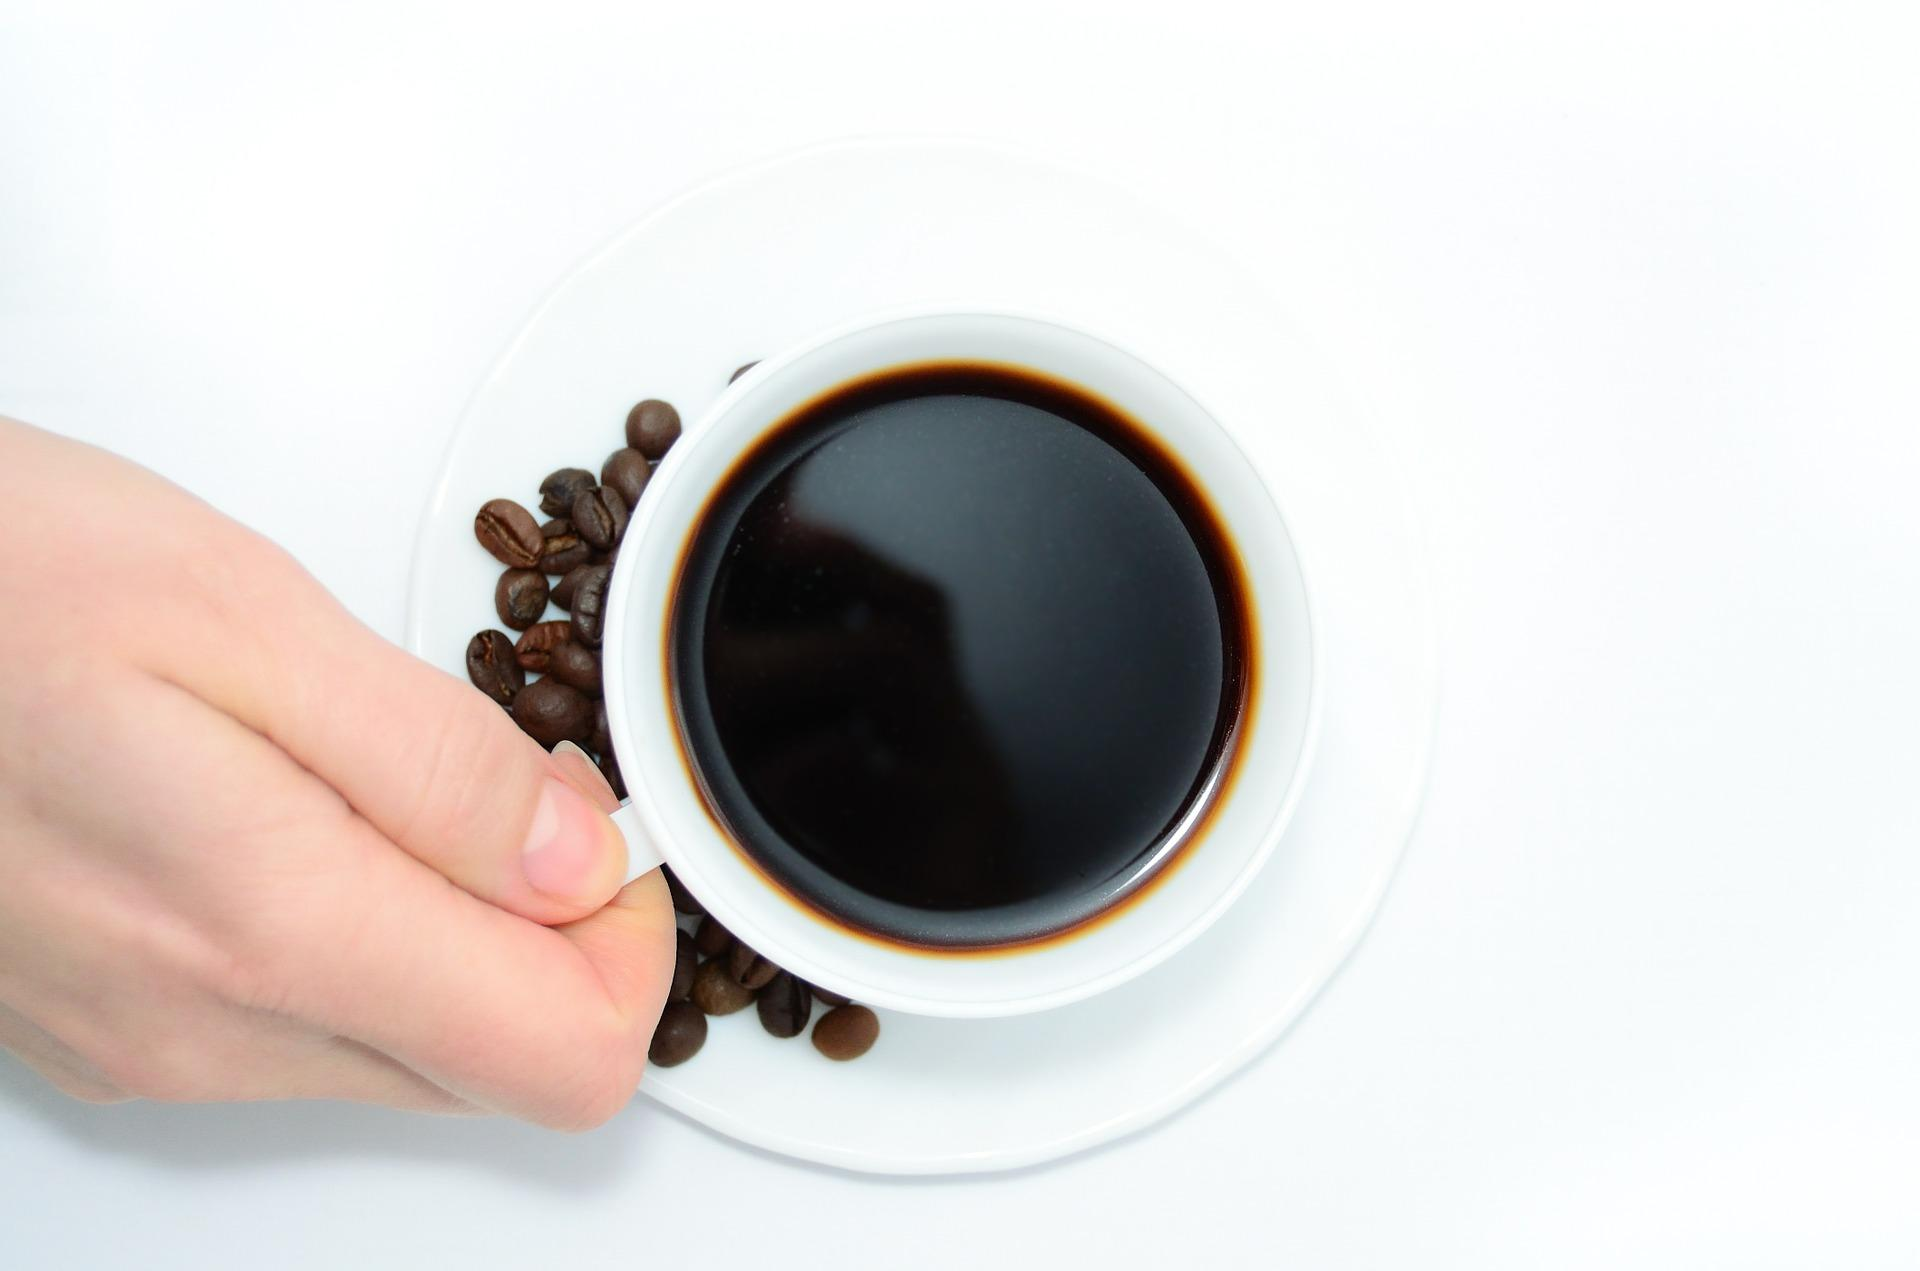 Caffeine drinks disrupt the human body's sleep cycle and can thus lead to poor health and lower productivity.